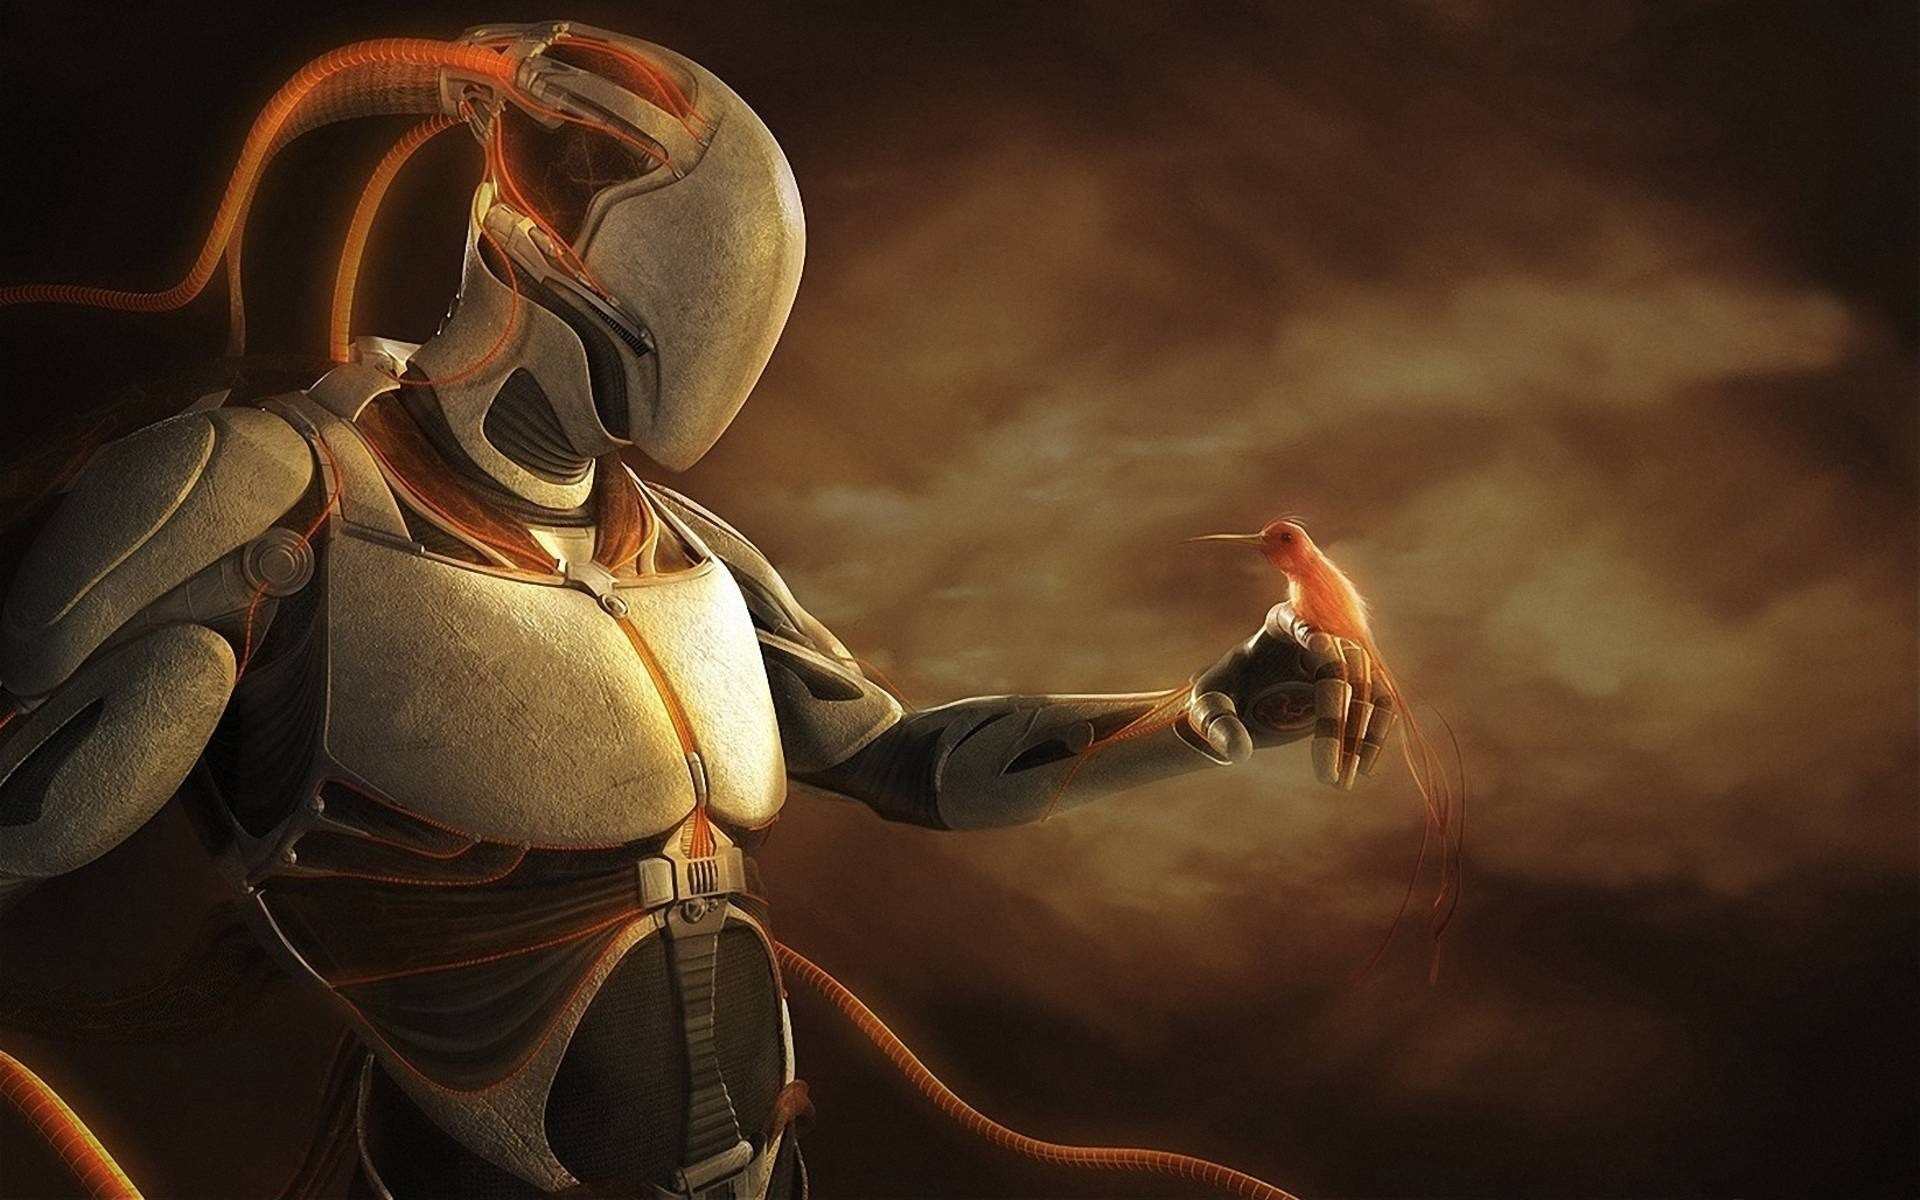 1920x1200 robots have feelings, robot, bird, art, fantasy